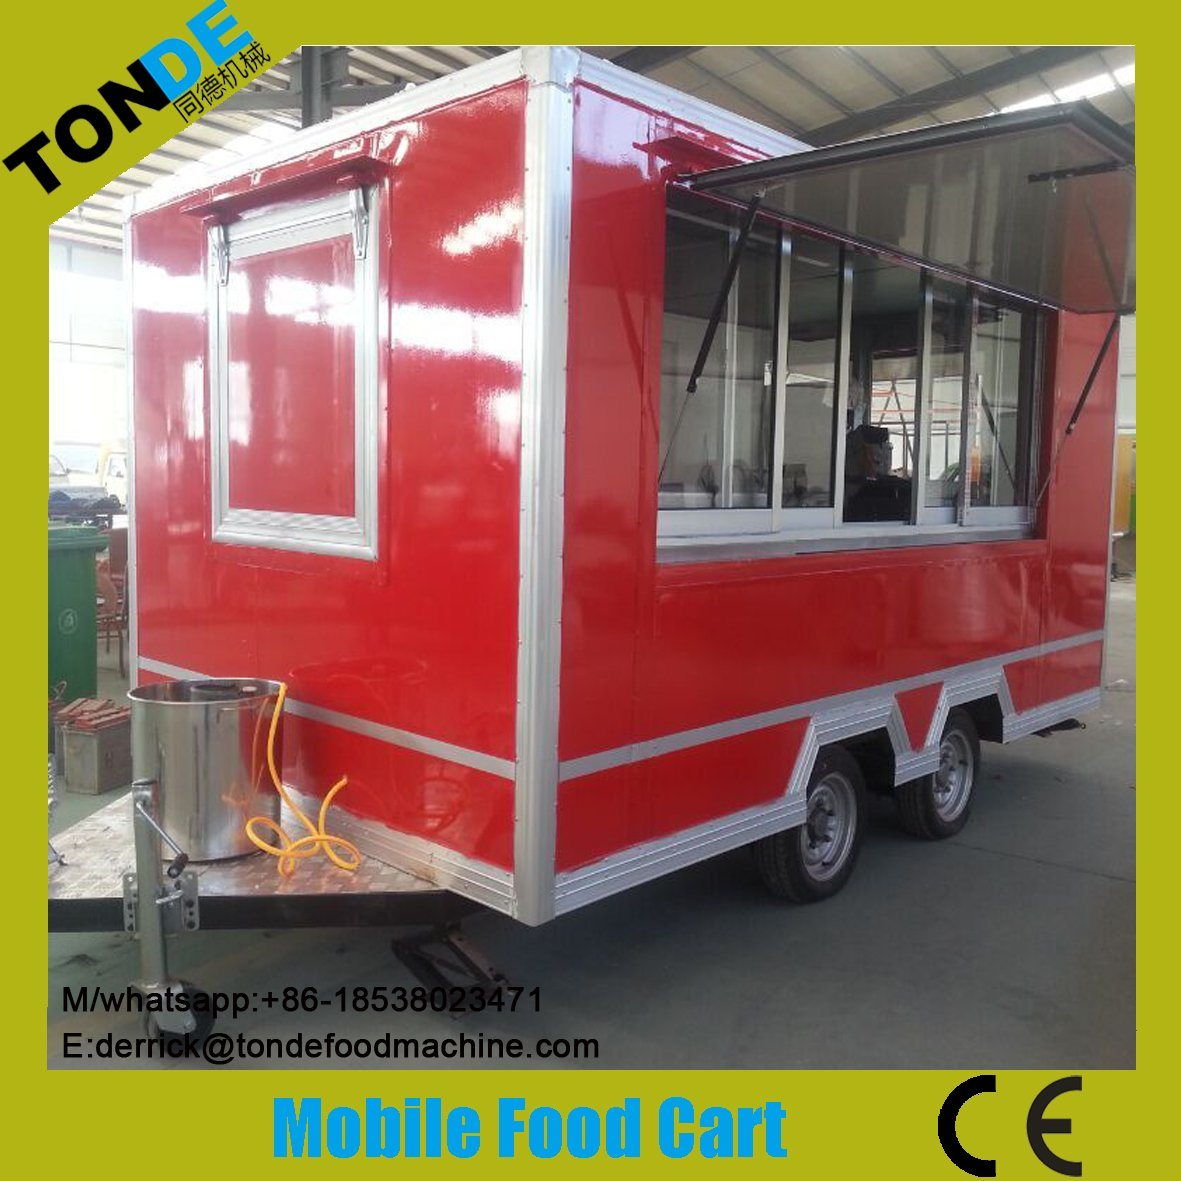 Kiosk for Vending Food and Juice